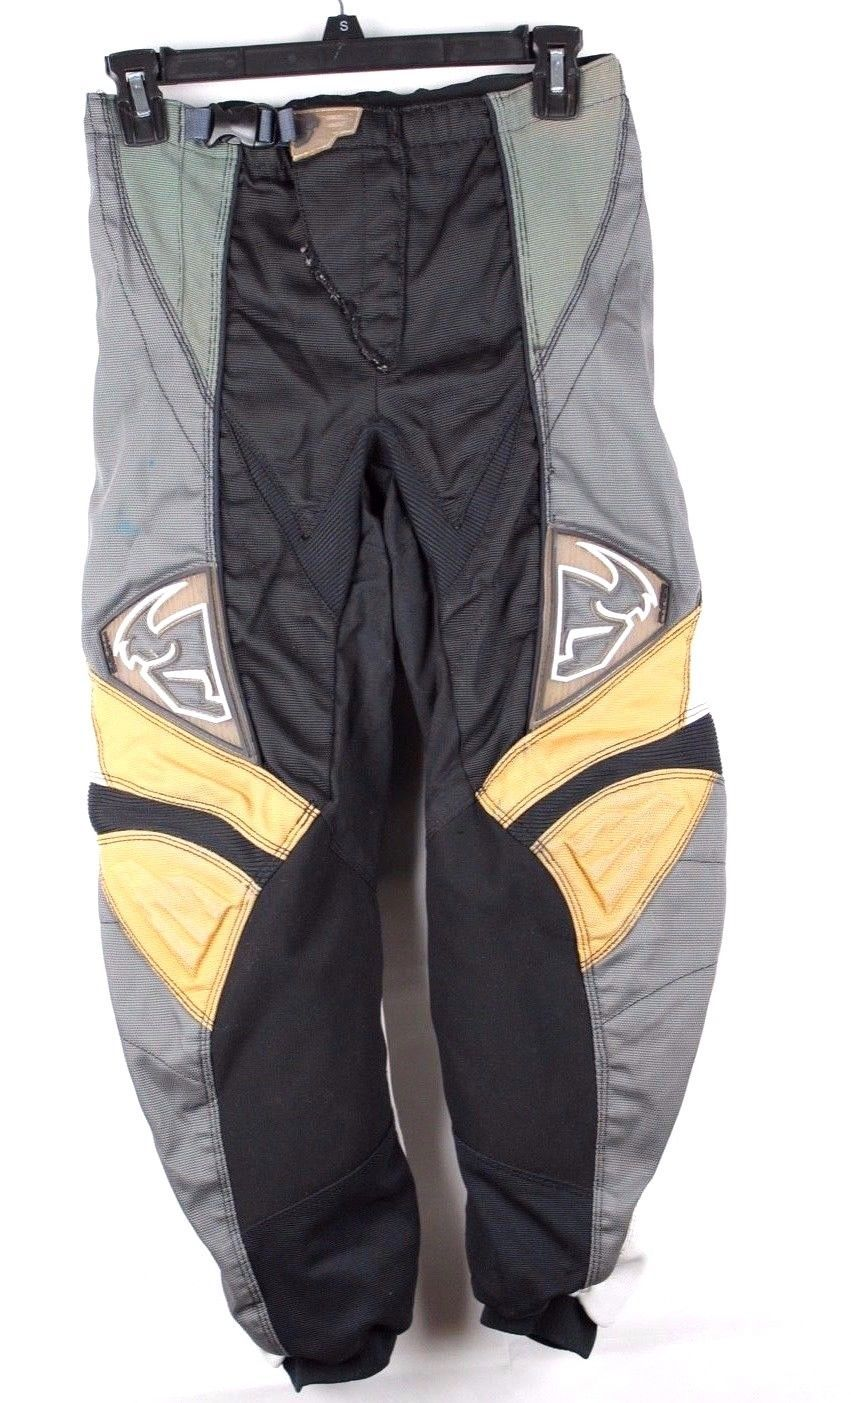 Primary image for Motorcycle Racing pant children phase protective system size 28